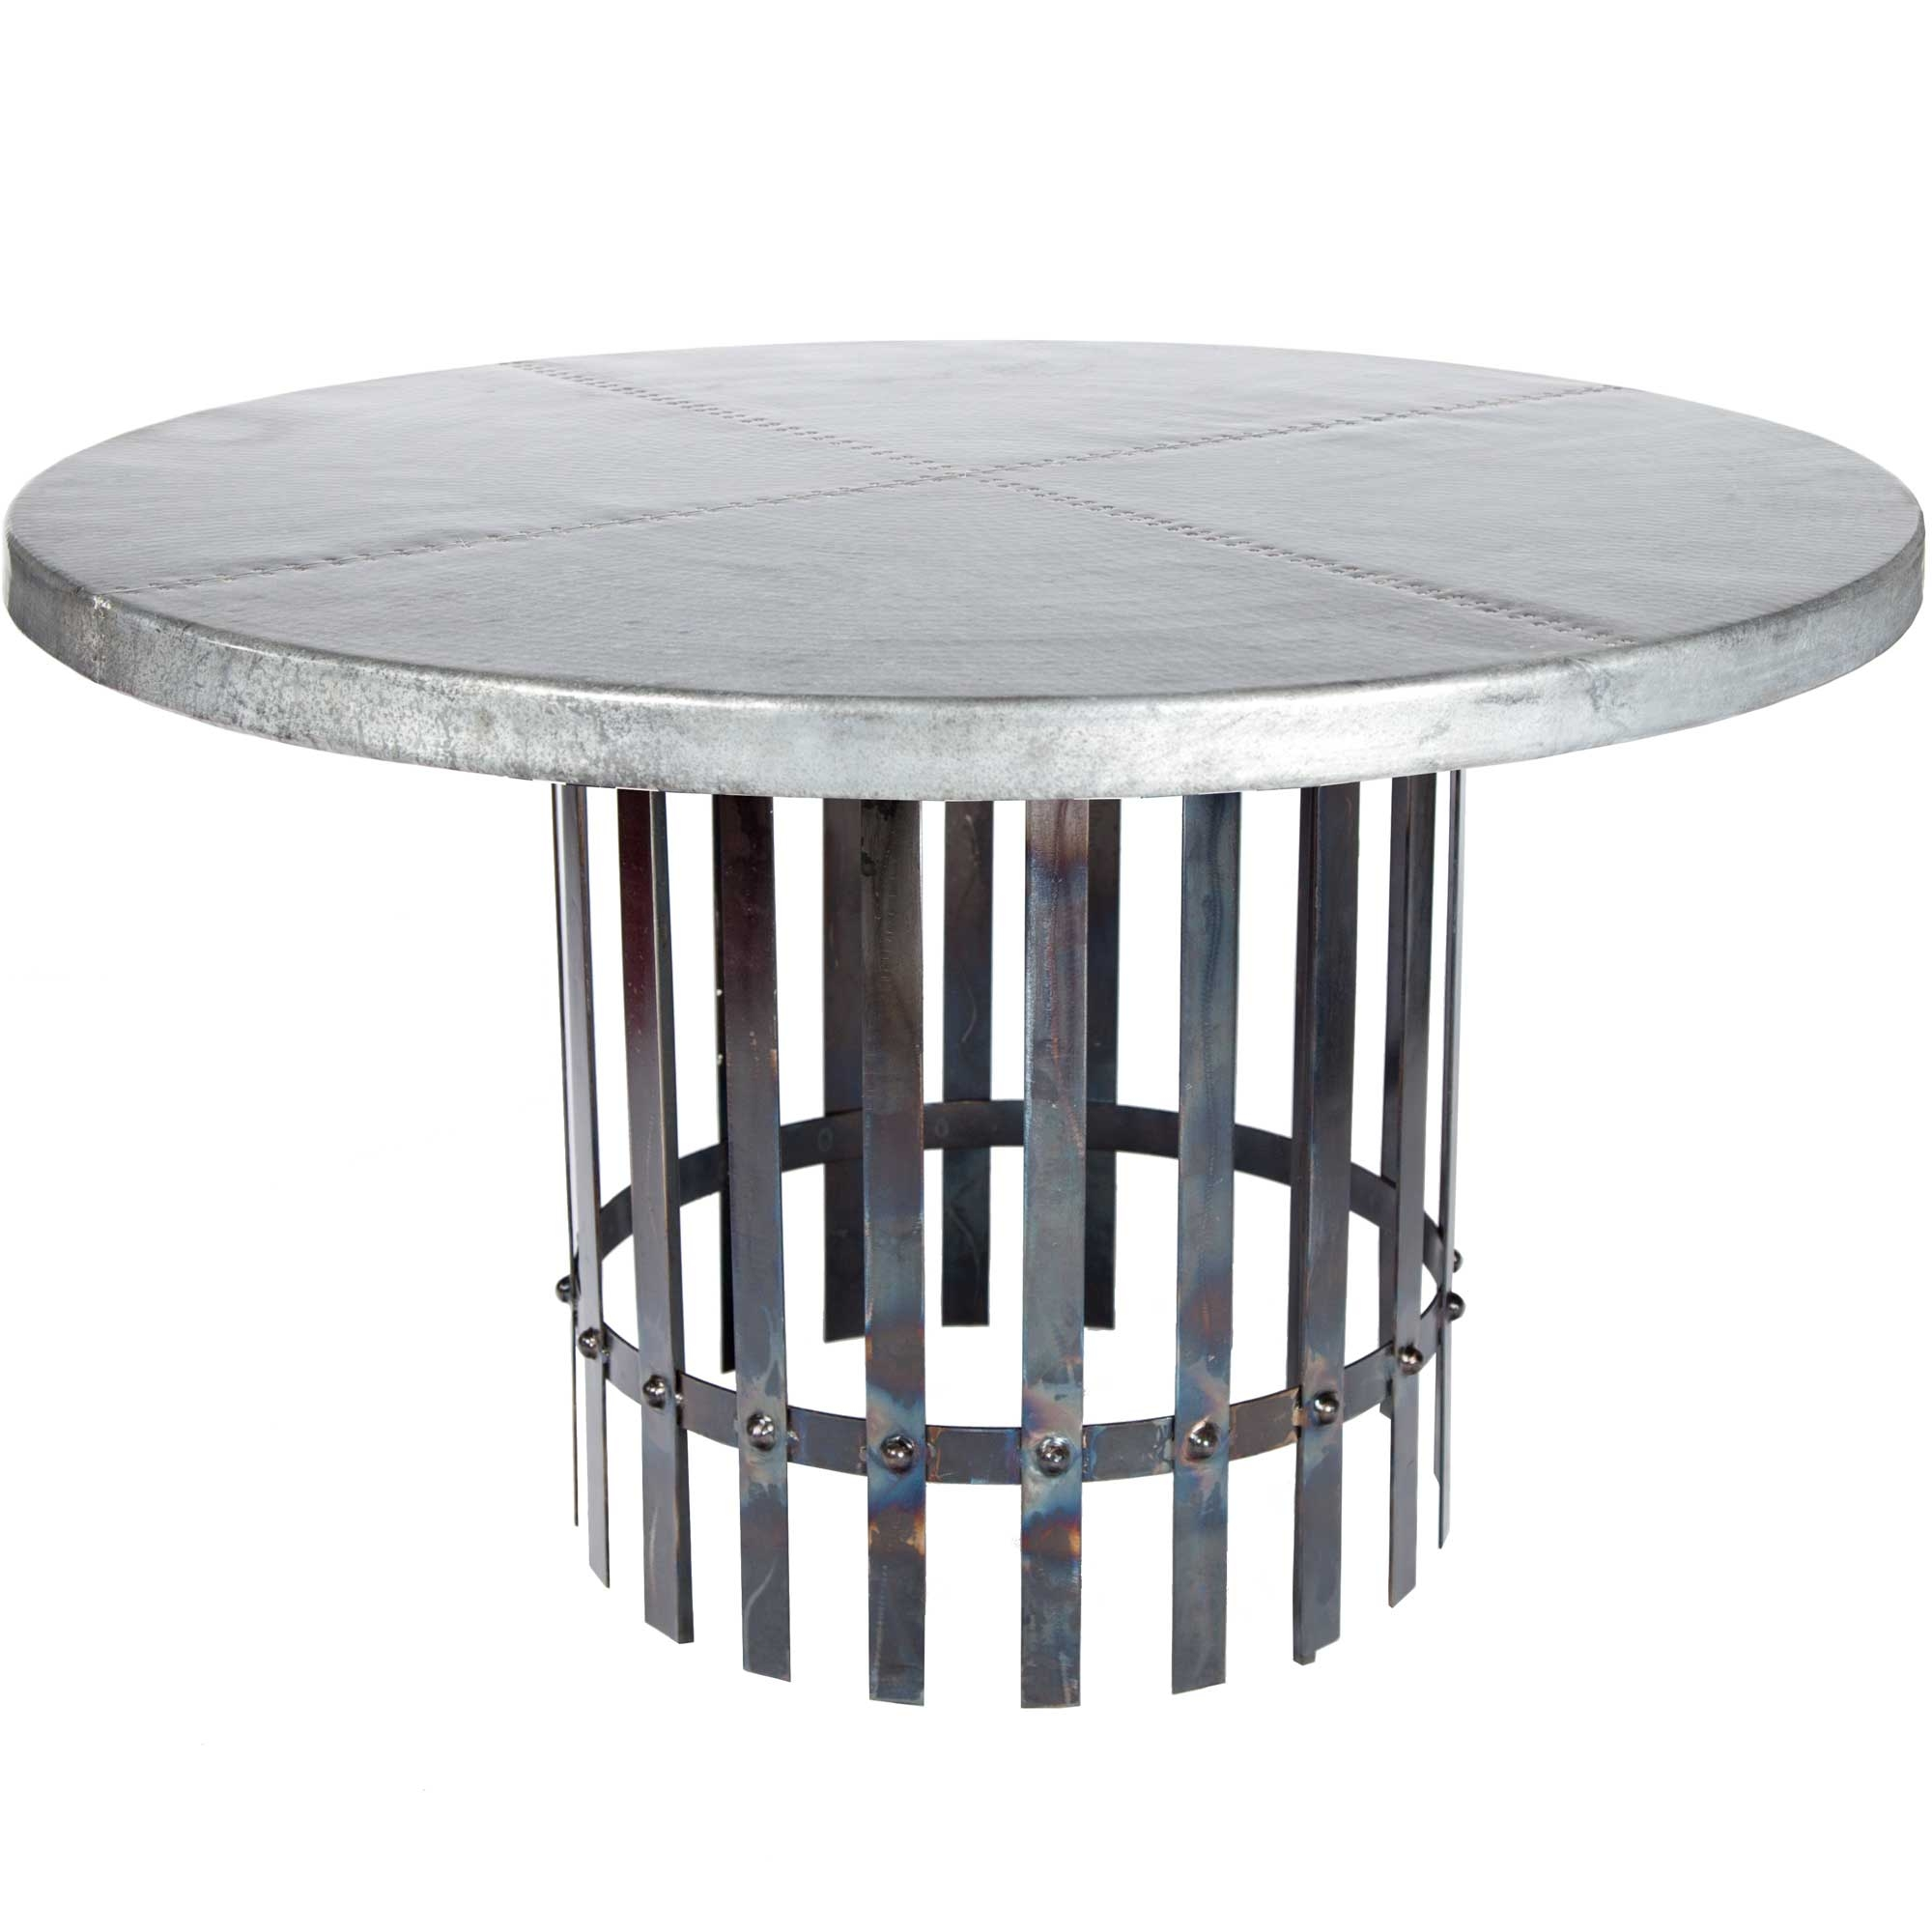 Ashton Iron Dining Table With Round Zinc Copper Top - 48 round white pedestal table